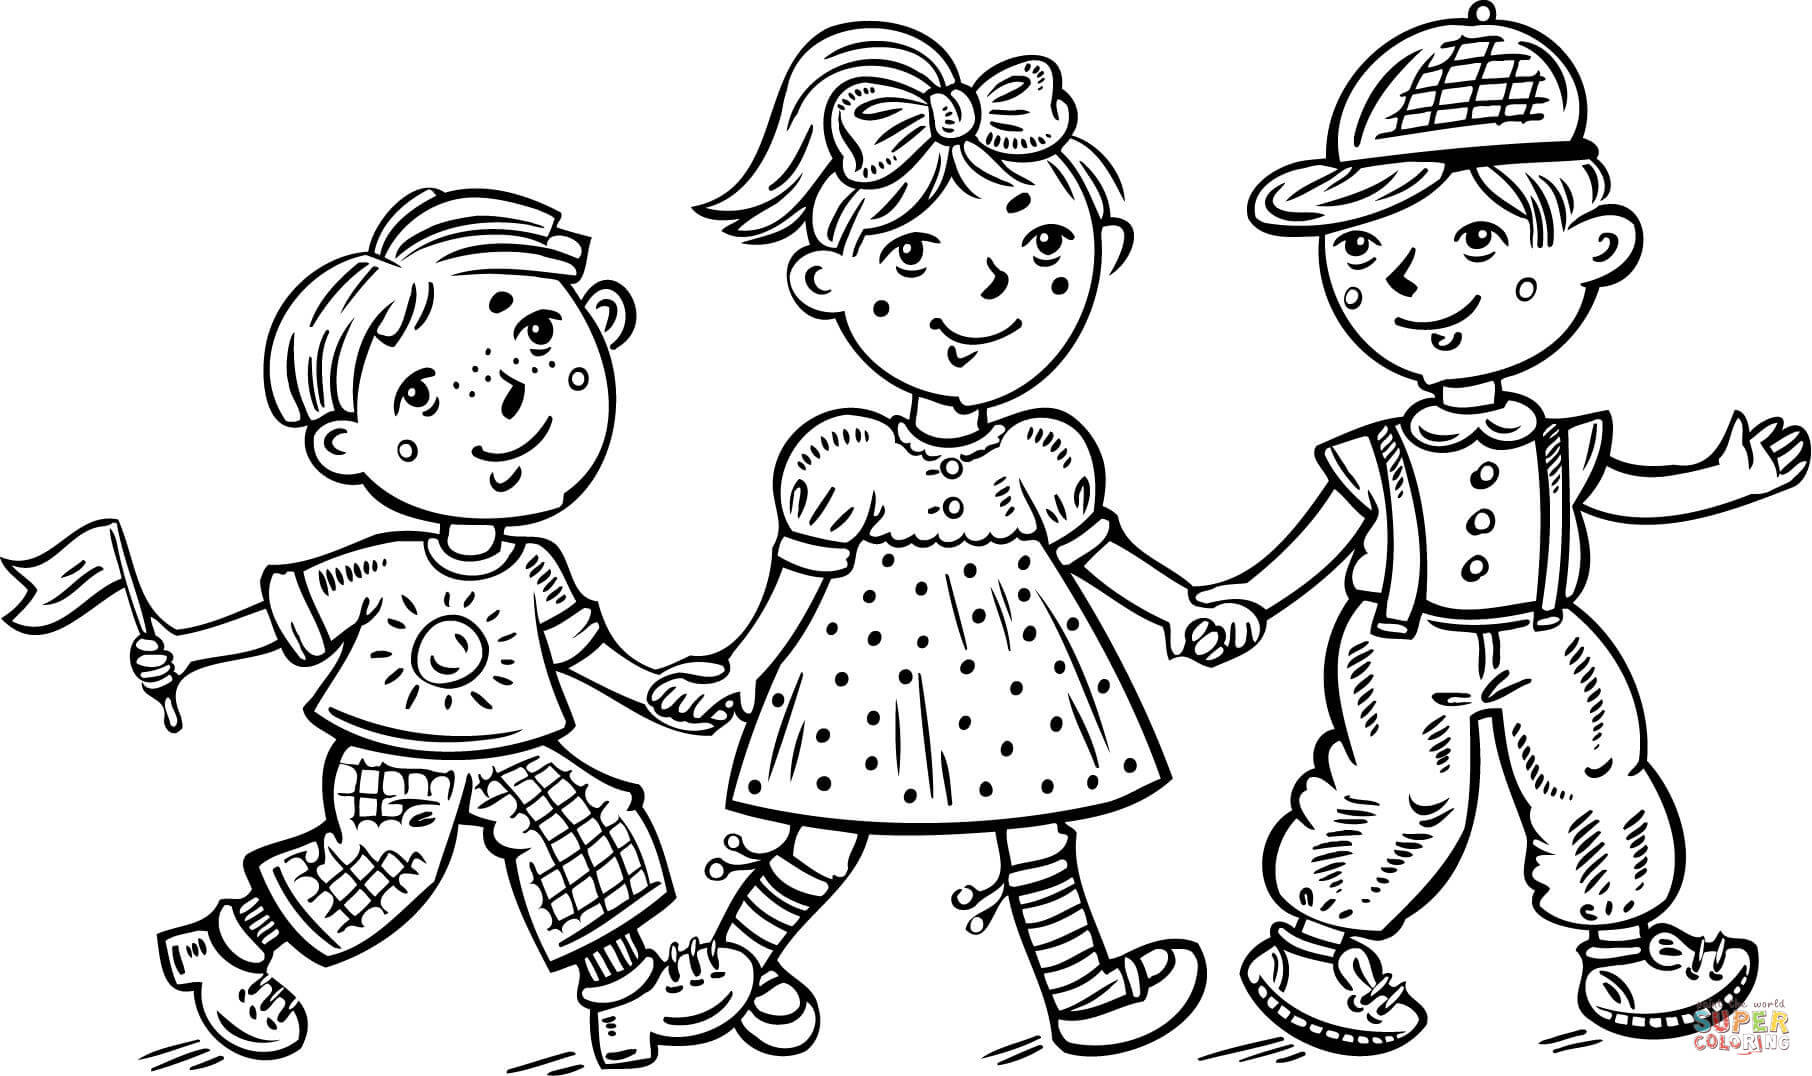 Free Printable Coloring Pages For Girls And Boys  Children Boys and a Girl Celebrating coloring page